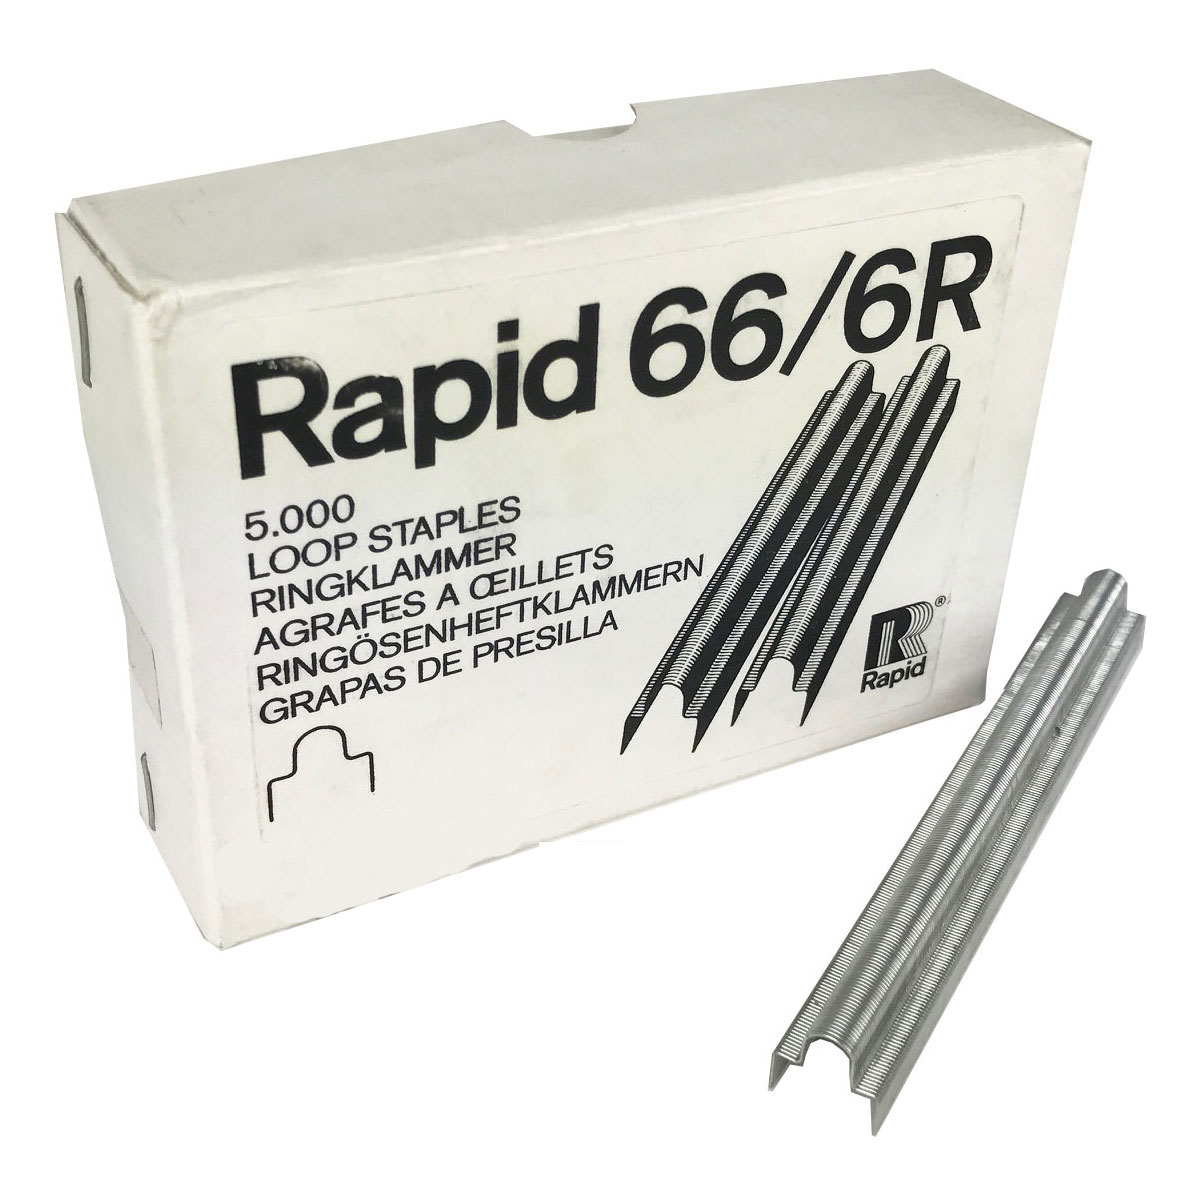 Rapid 66/6Ri Steel Loop Staples (5,000)